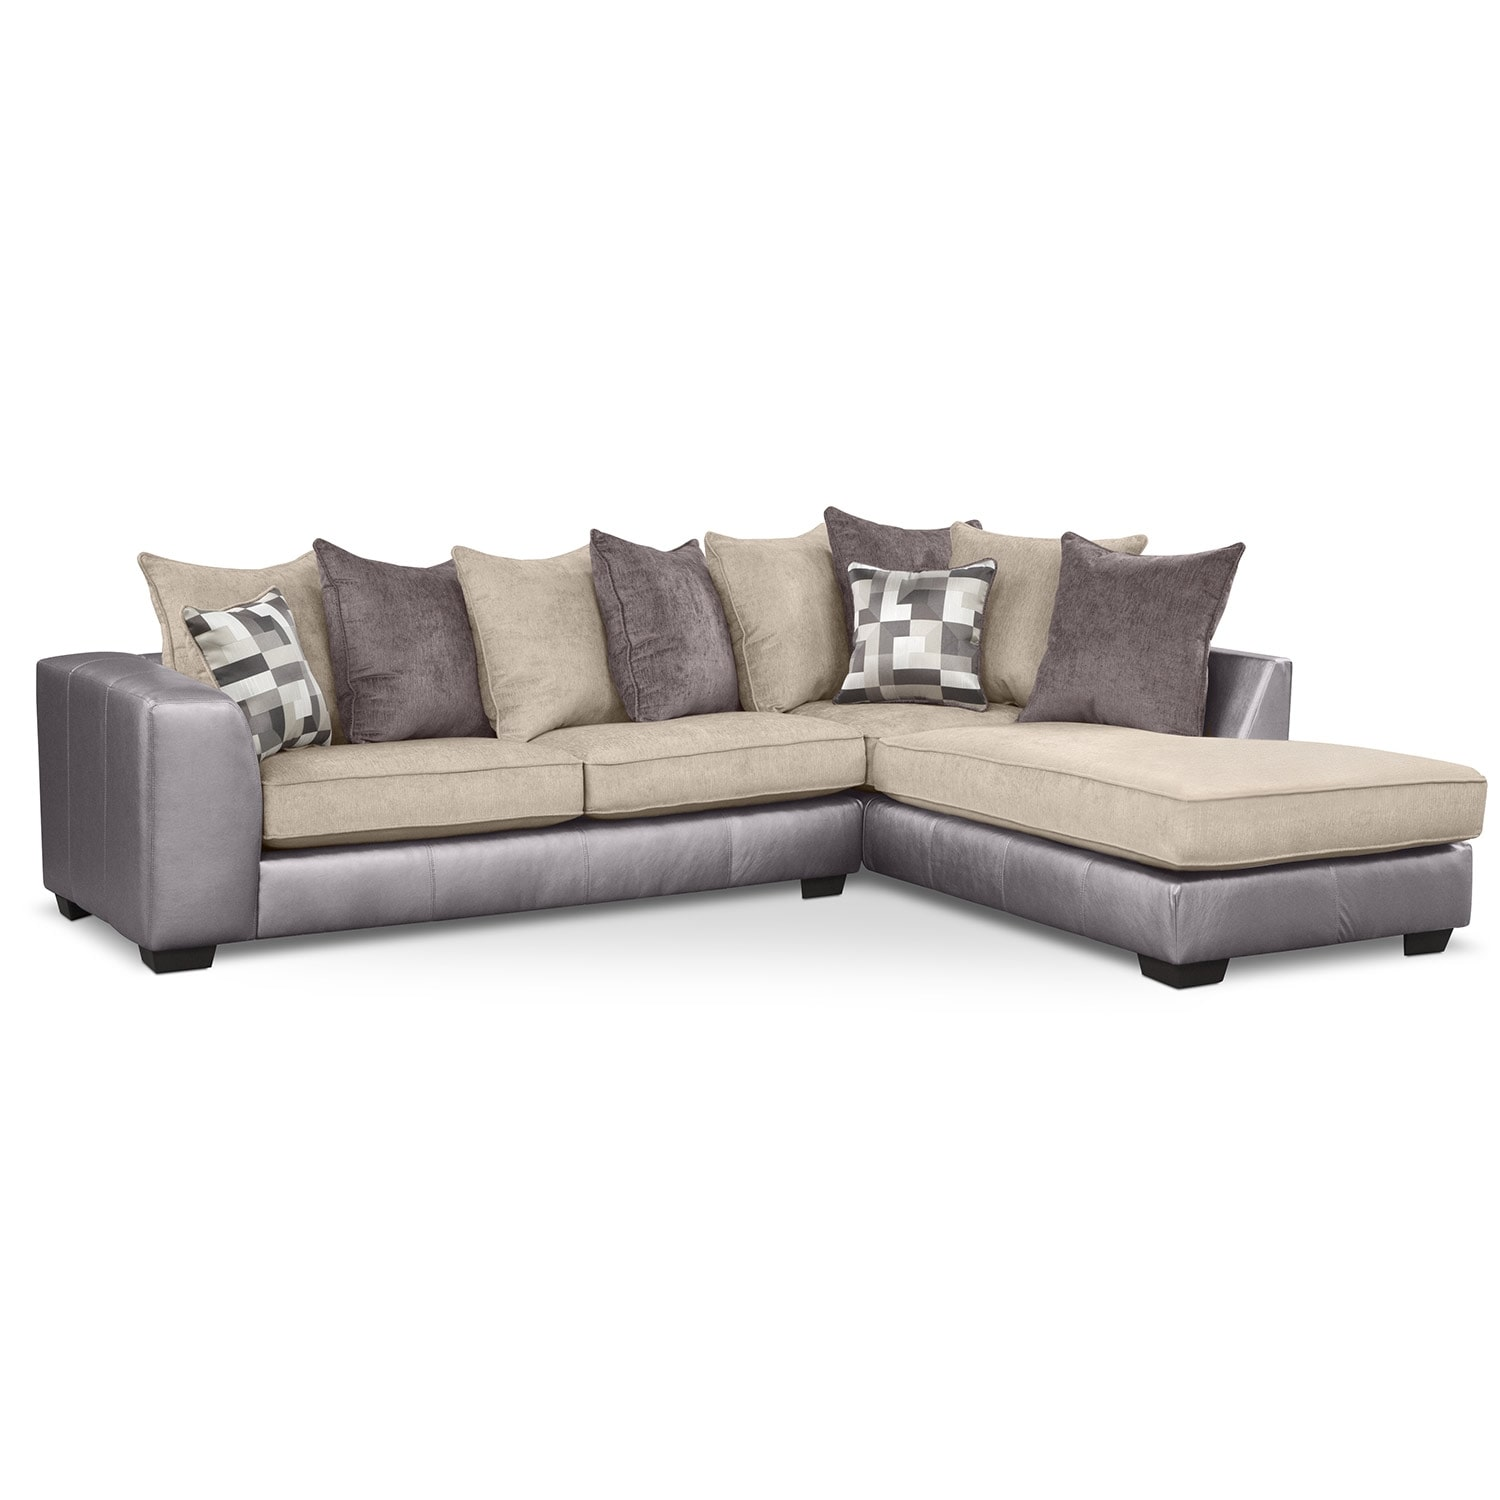 [Montero II 2 Pc. Sectional]